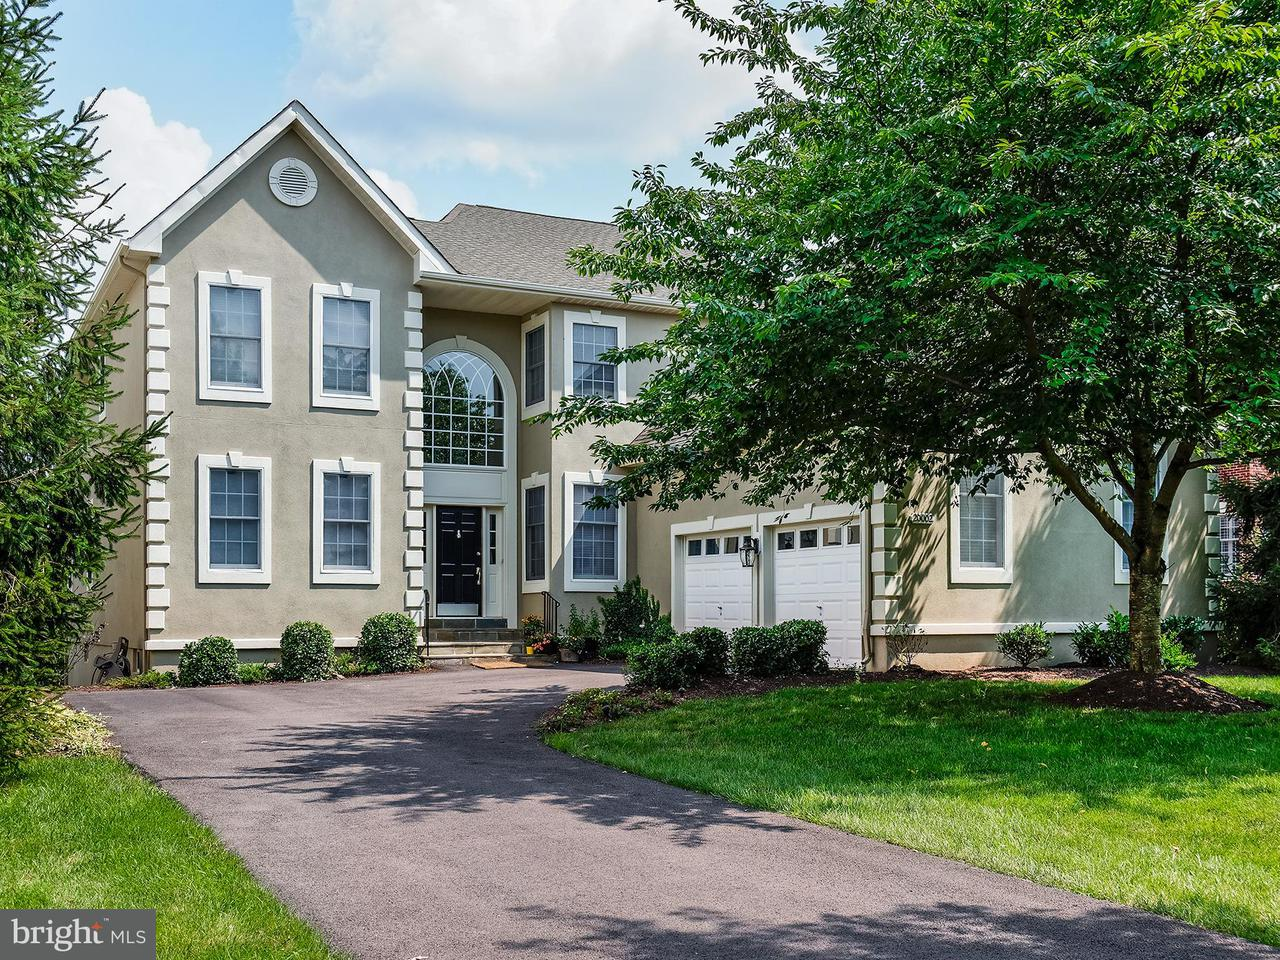 Single Family Home for Sale at 20002 Palmer Classic Pkwy 20002 Palmer Classic Pkwy Ashburn, Virginia 20147 United States